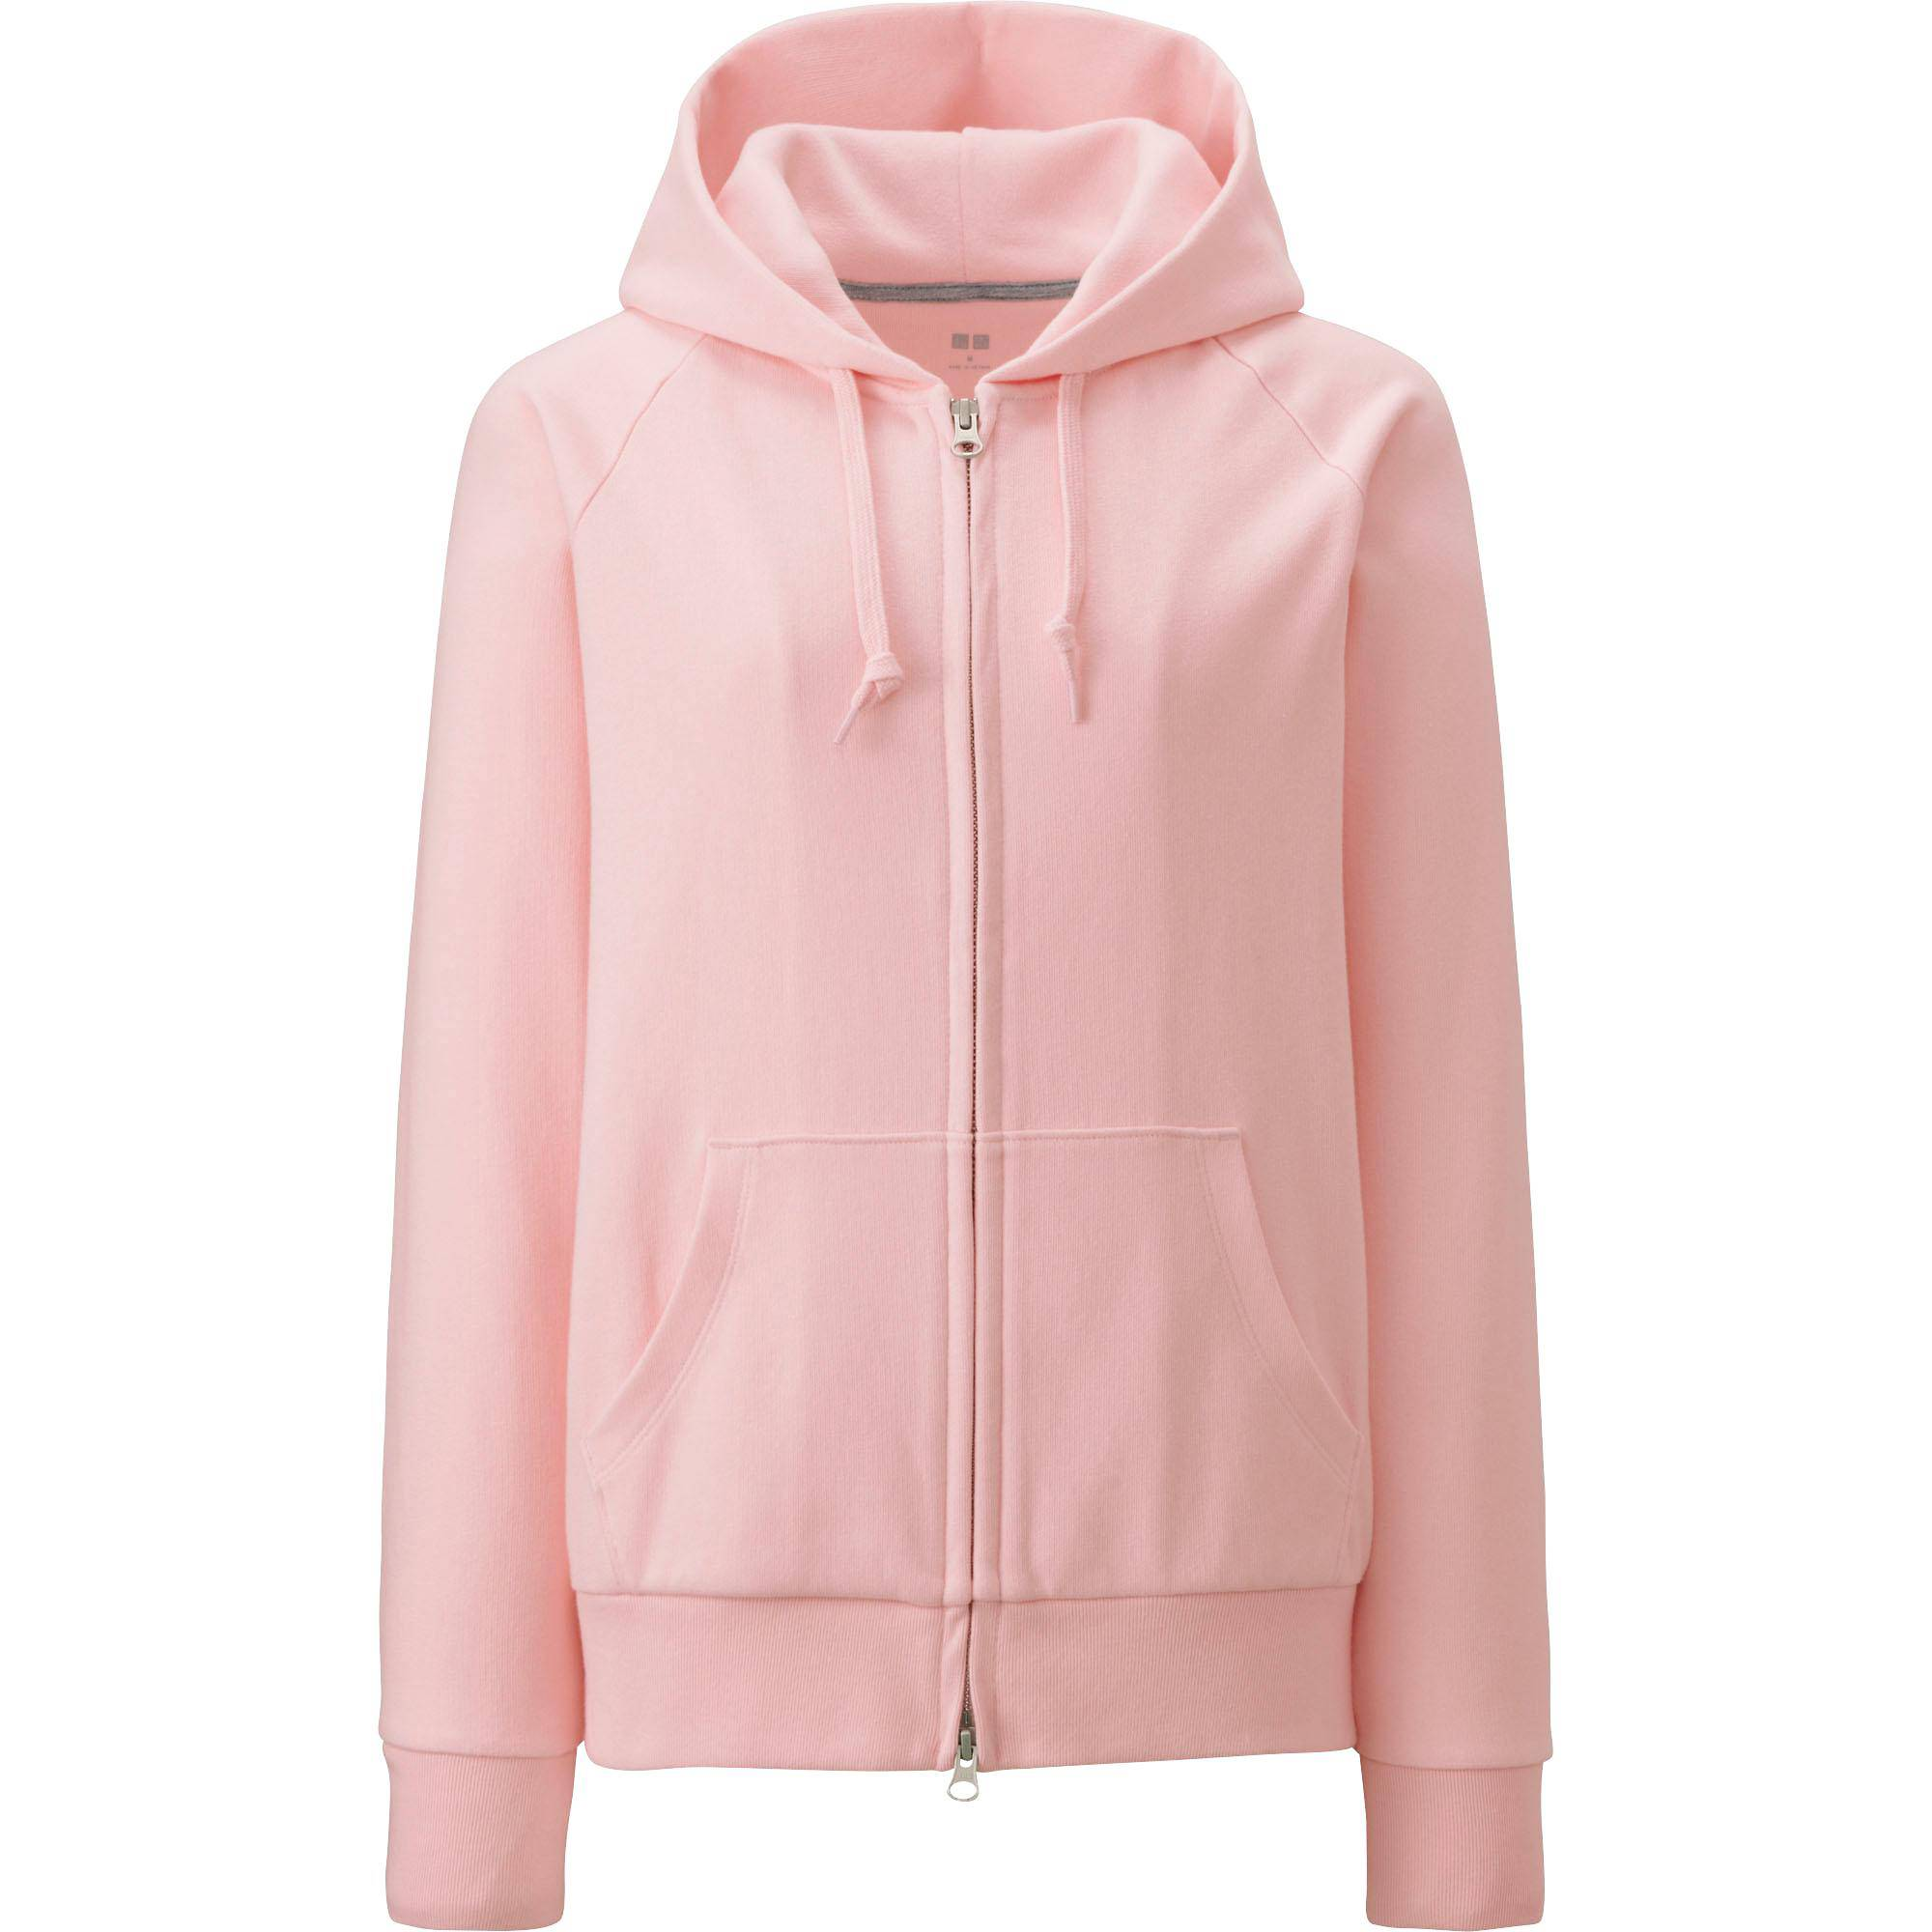 Women's Zip-Up Hoodie | UNIQLO US